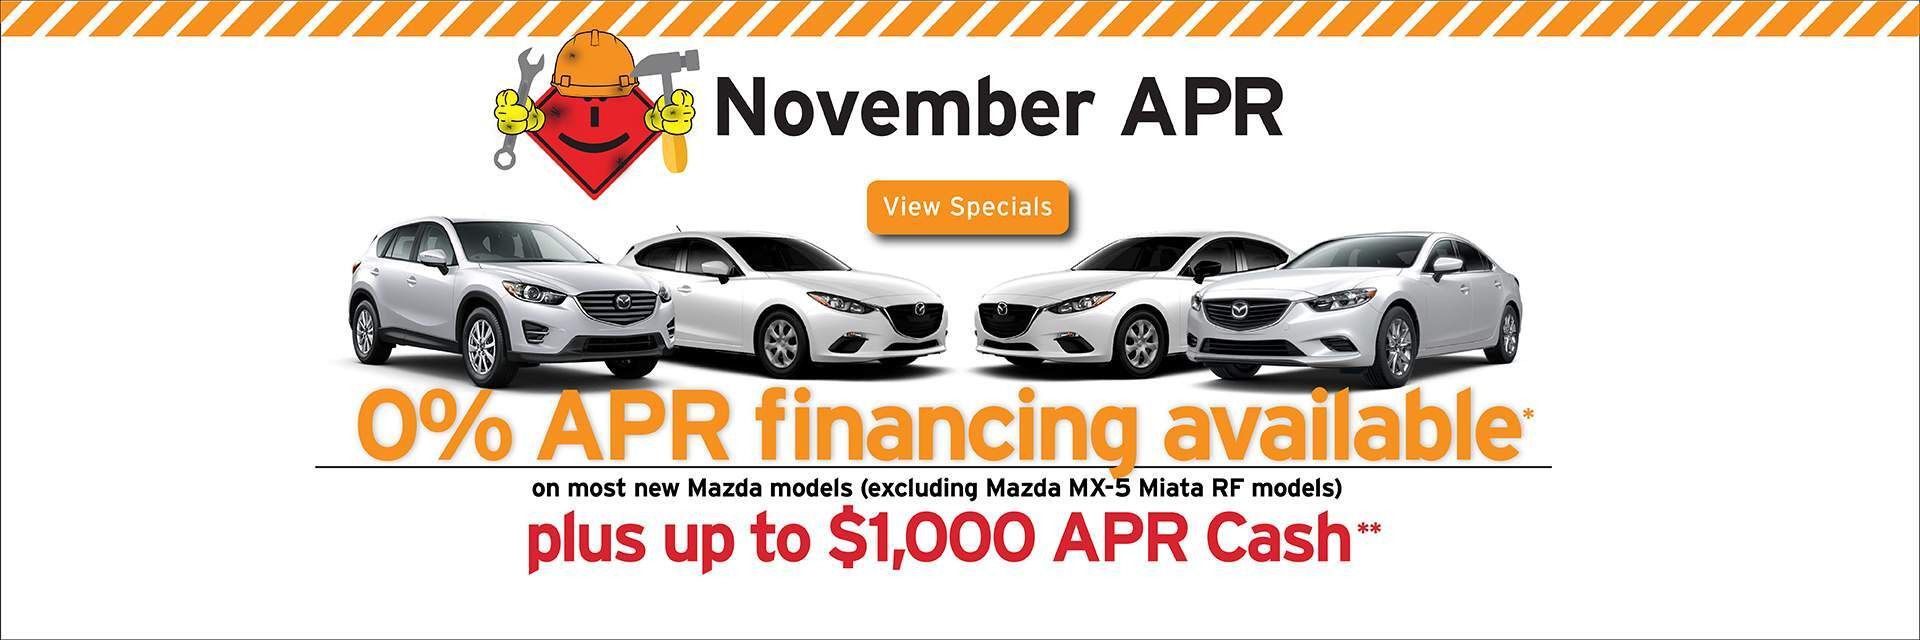 Capistrano Mazda APR offers - 0% APR up to 60 months + up to $1,500 Bonus Cash!